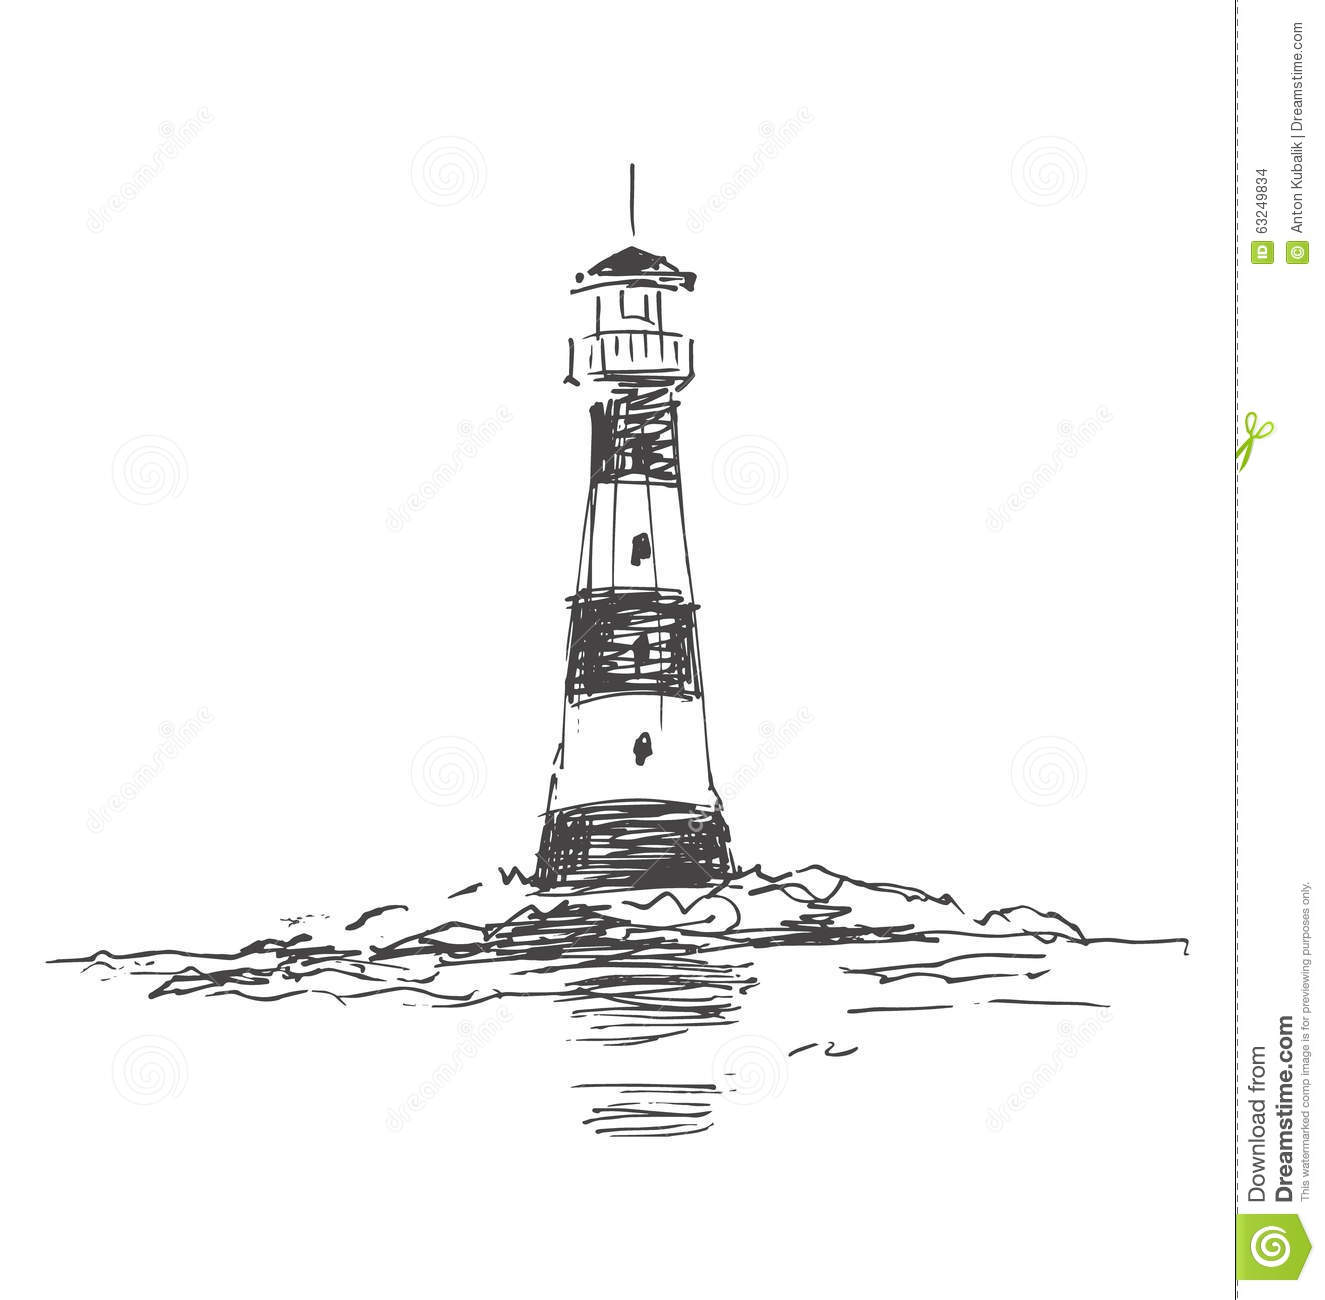 Stock Illustration Boat Sea Hand Drawn Doodles Set Sailboats Ocean Life Other Related Objects Image51678498 together with Collectionsdwn Ship Wheel Drawing besides Phare 19904071 likewise Blog Post moreover Diy Lighthouses Nautical. on lighthouse plans and drawings